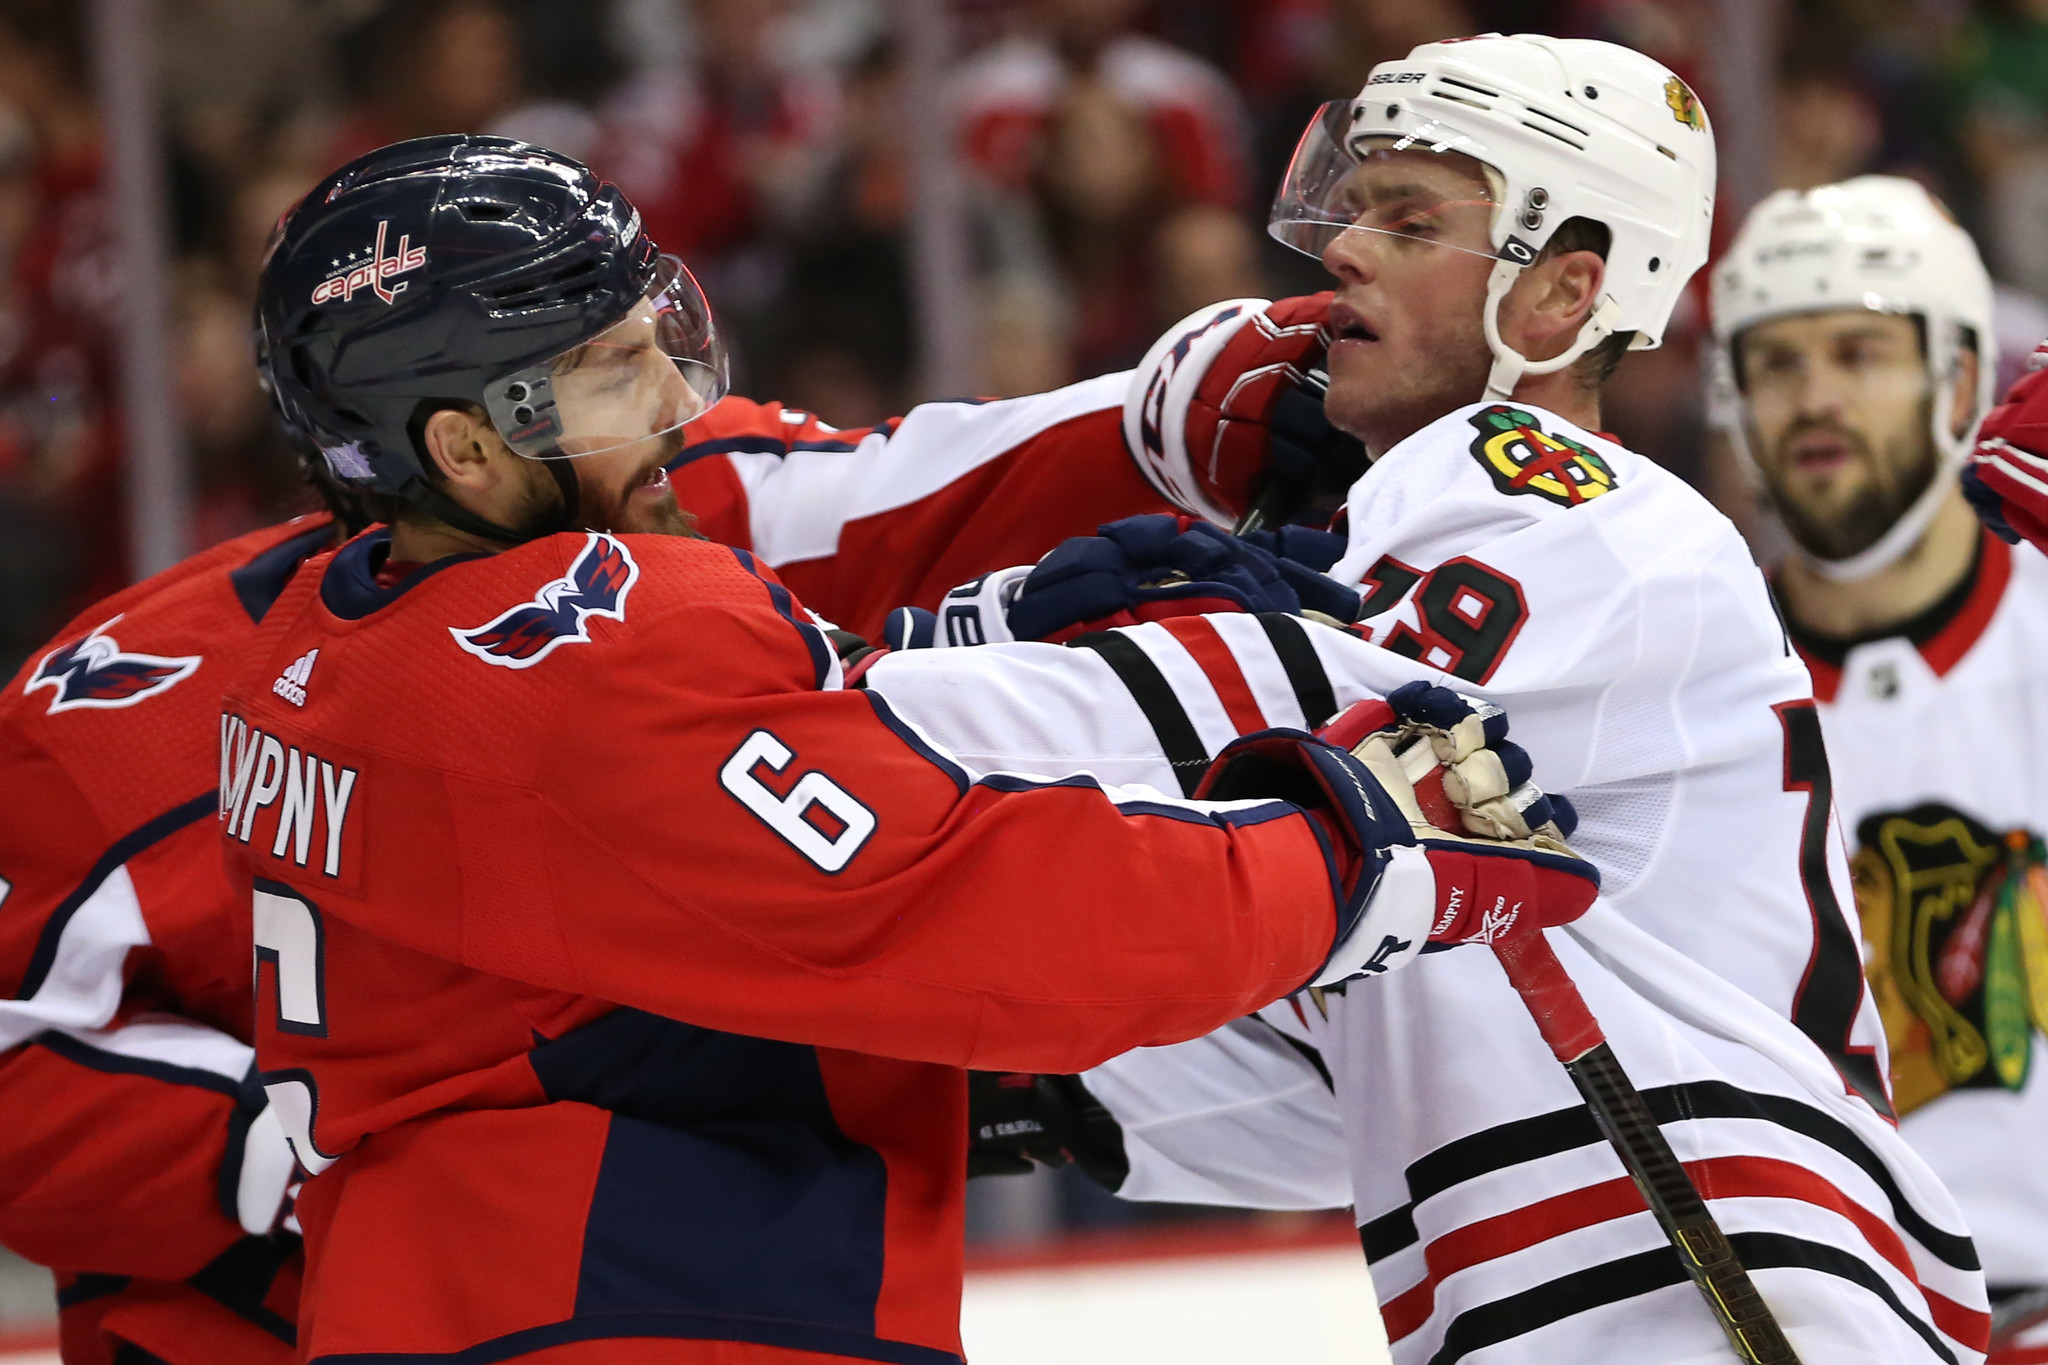 3 takeaways from the Blackhawks' 4-2 loss to the Capitals